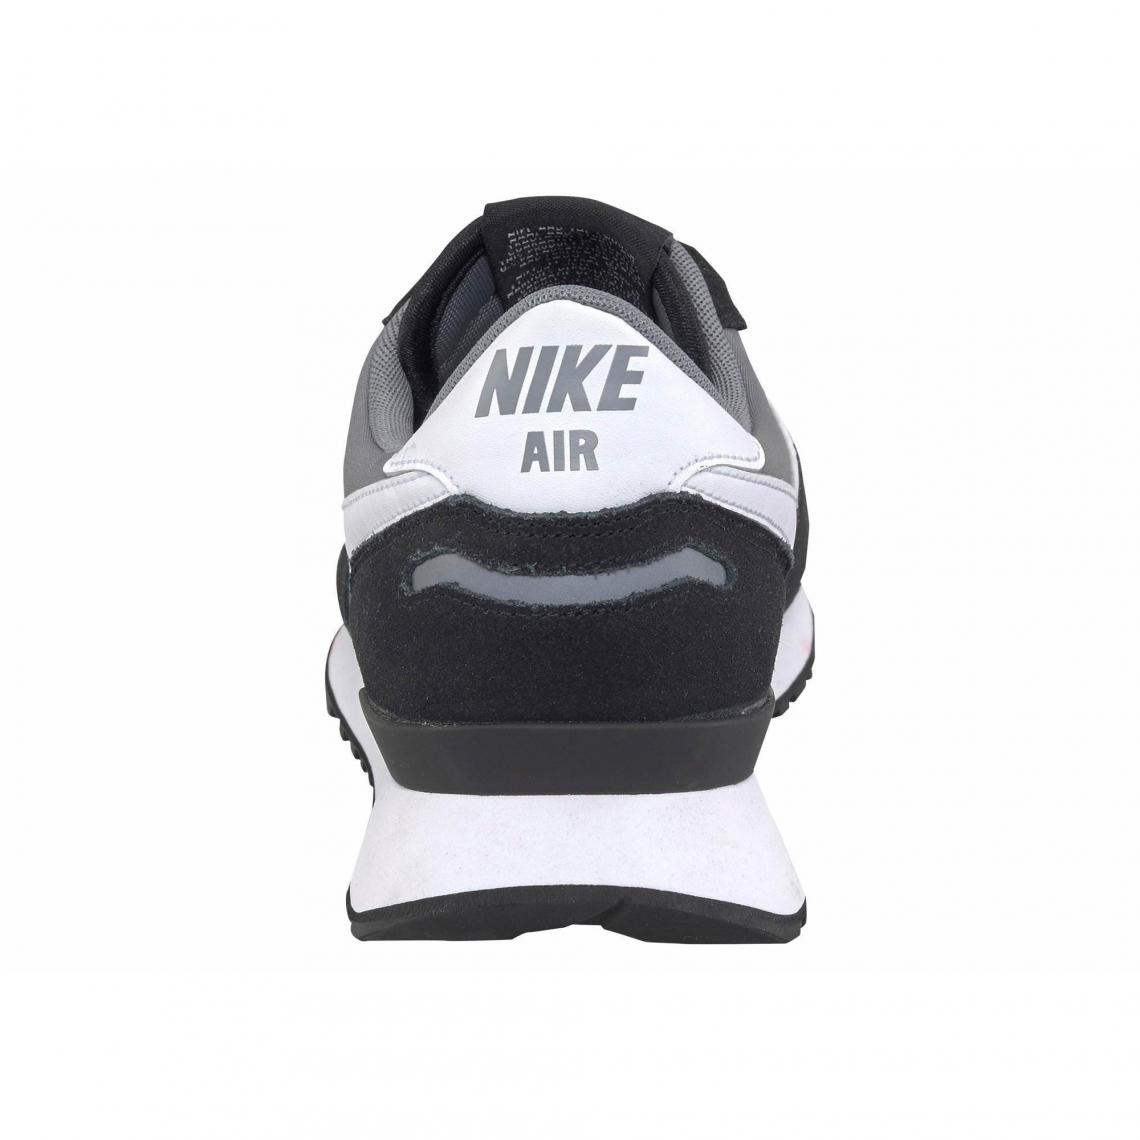 low priced c2c11 2a043 Toutes les chaussures Nike